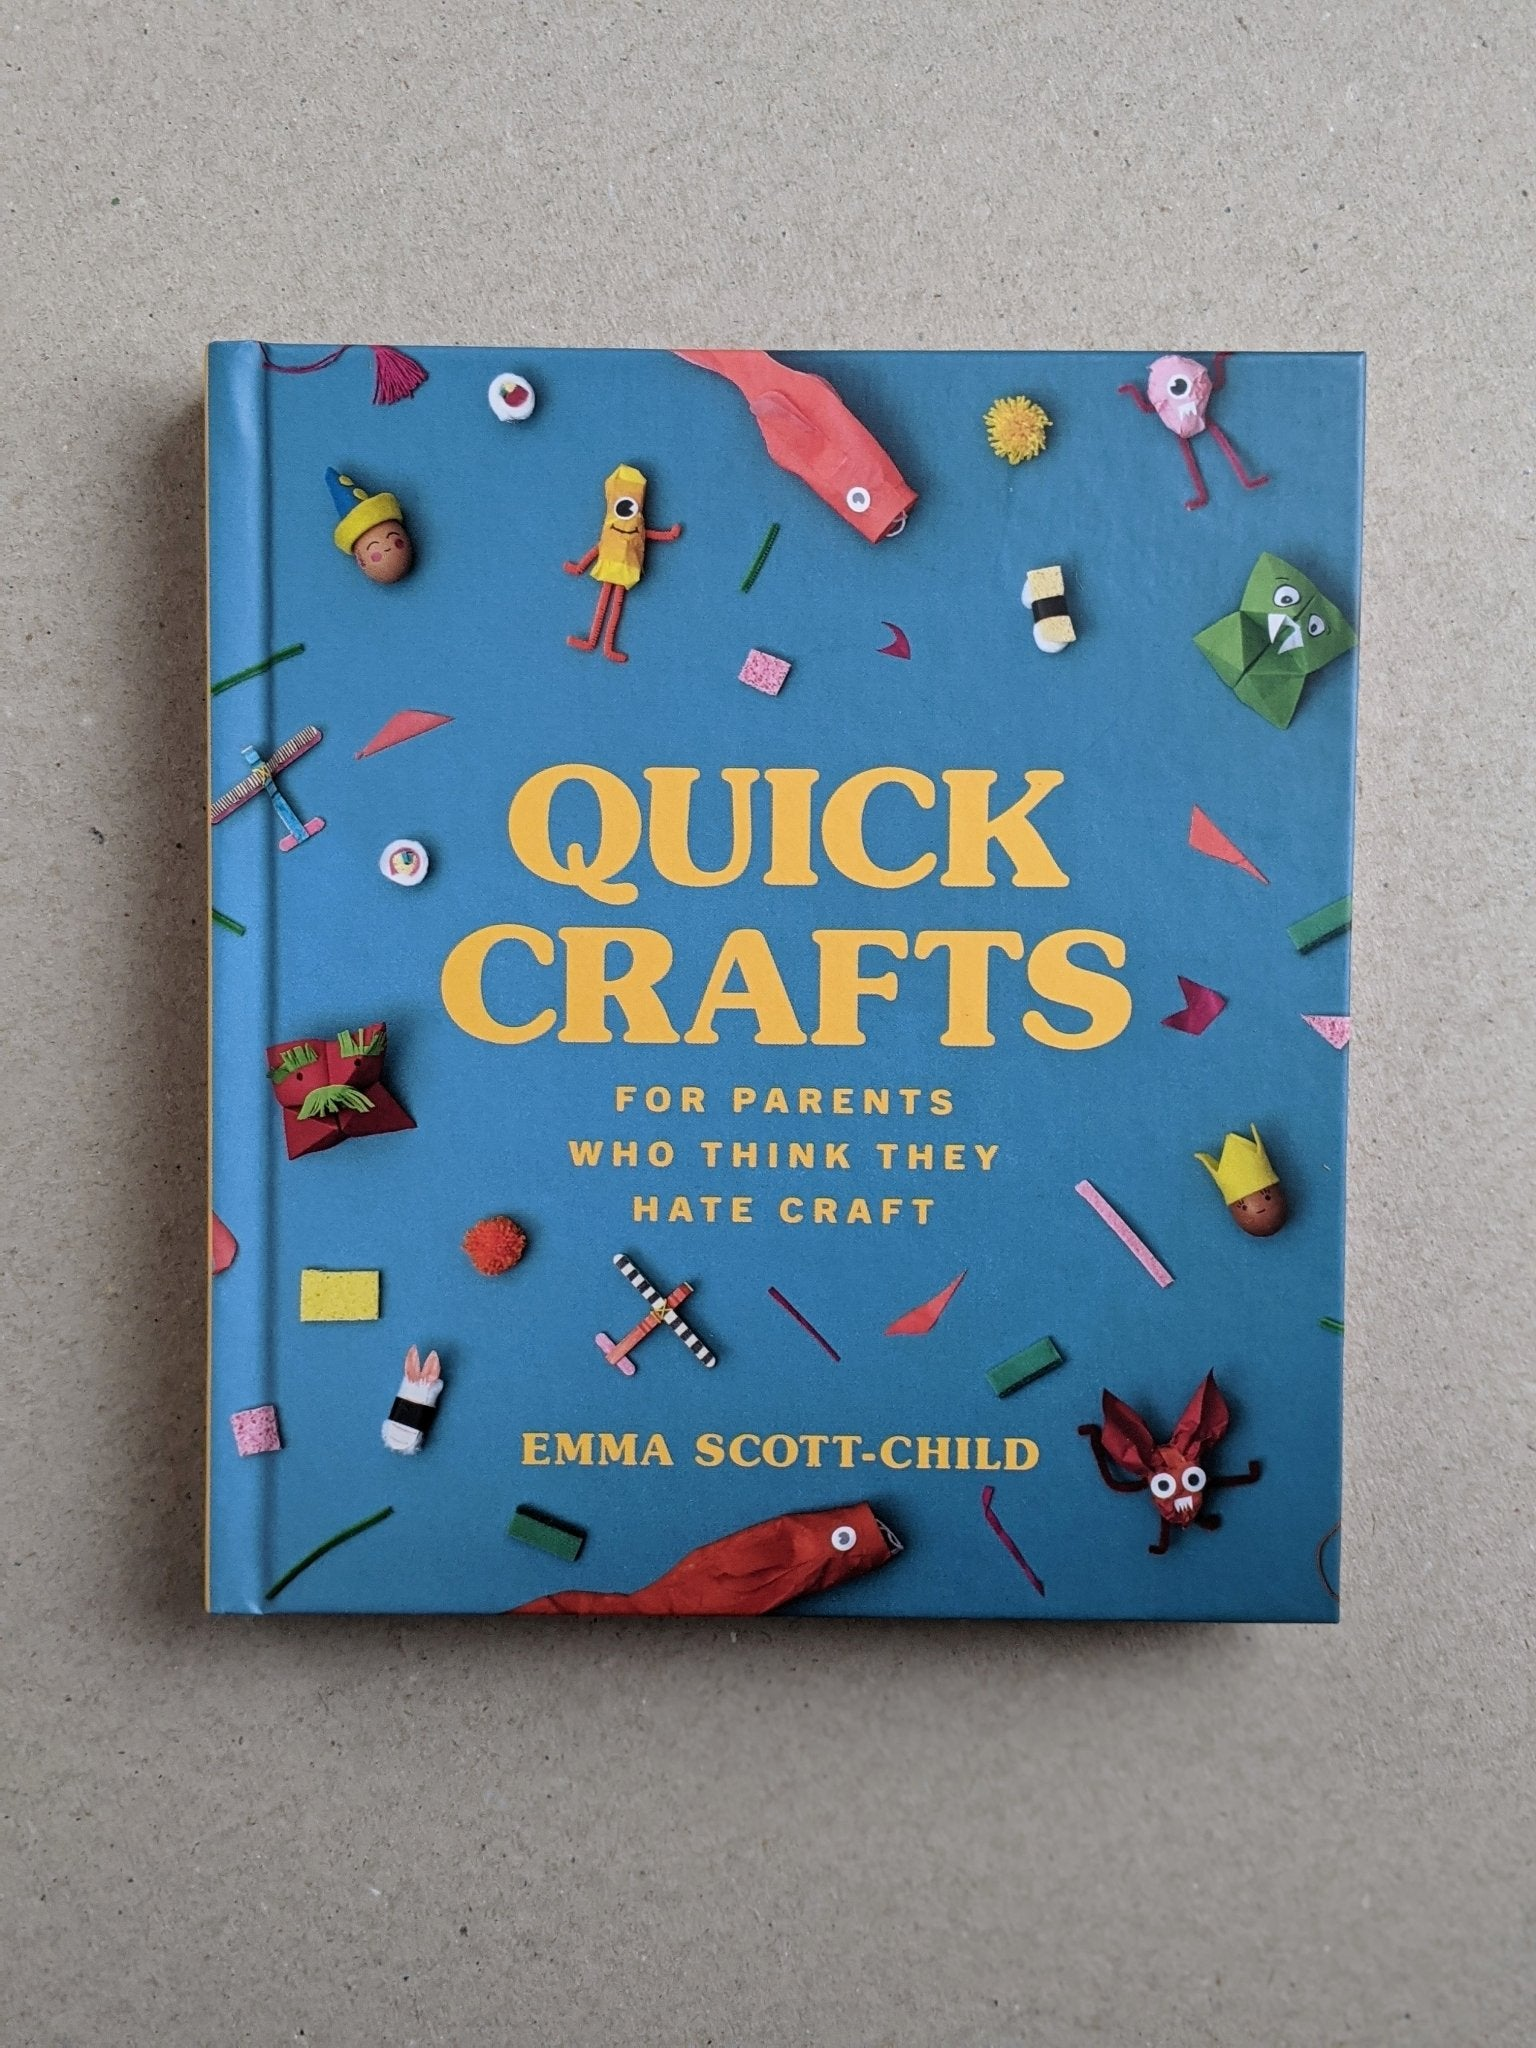 Quick Crafts for Kids - The Stationery Cupboard